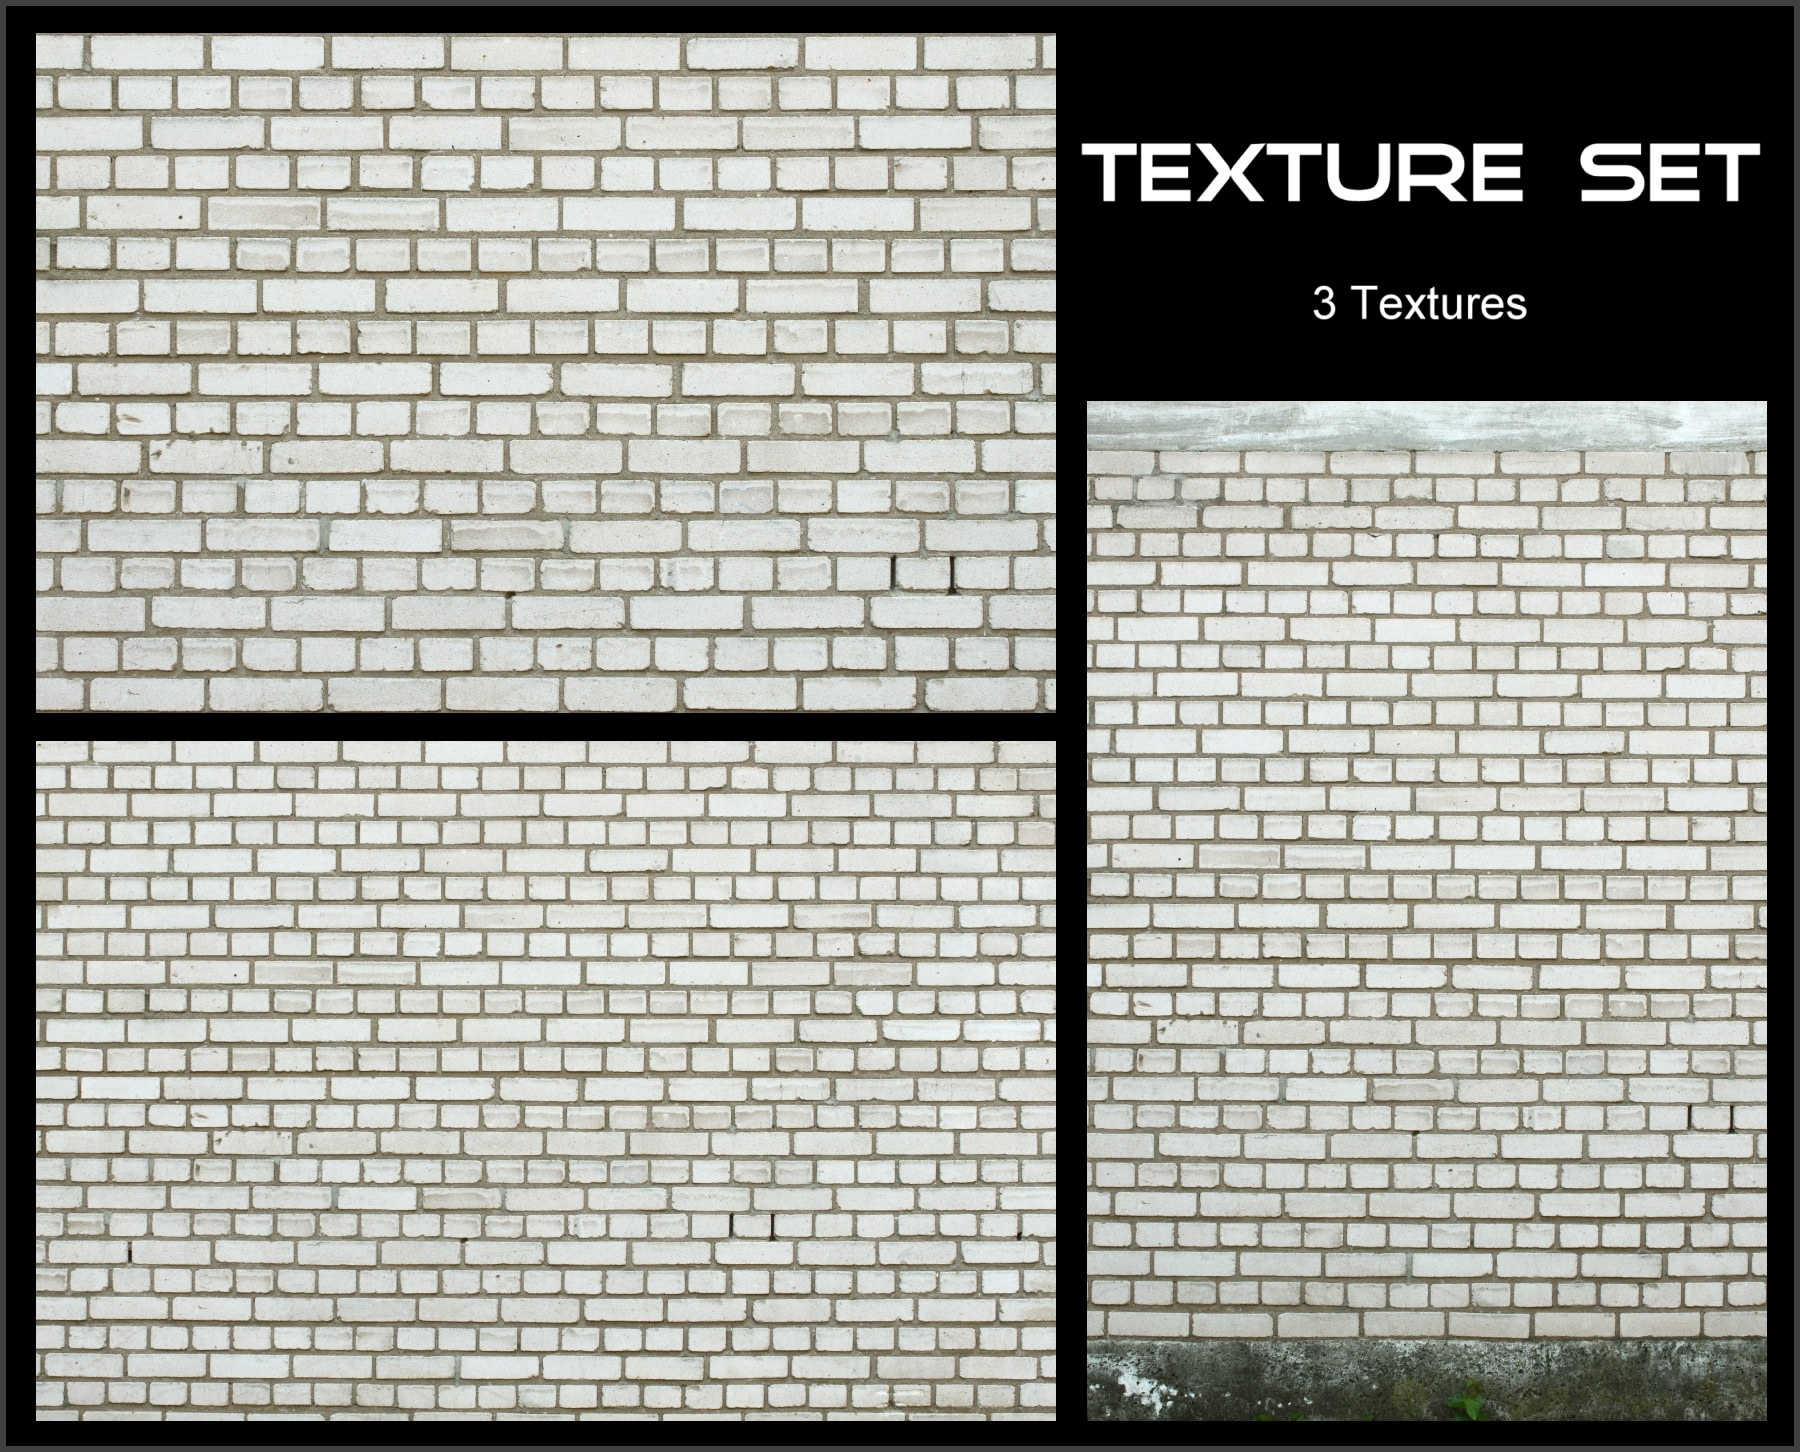 texture_set___white_brick_by_agf81-d3kfzm4